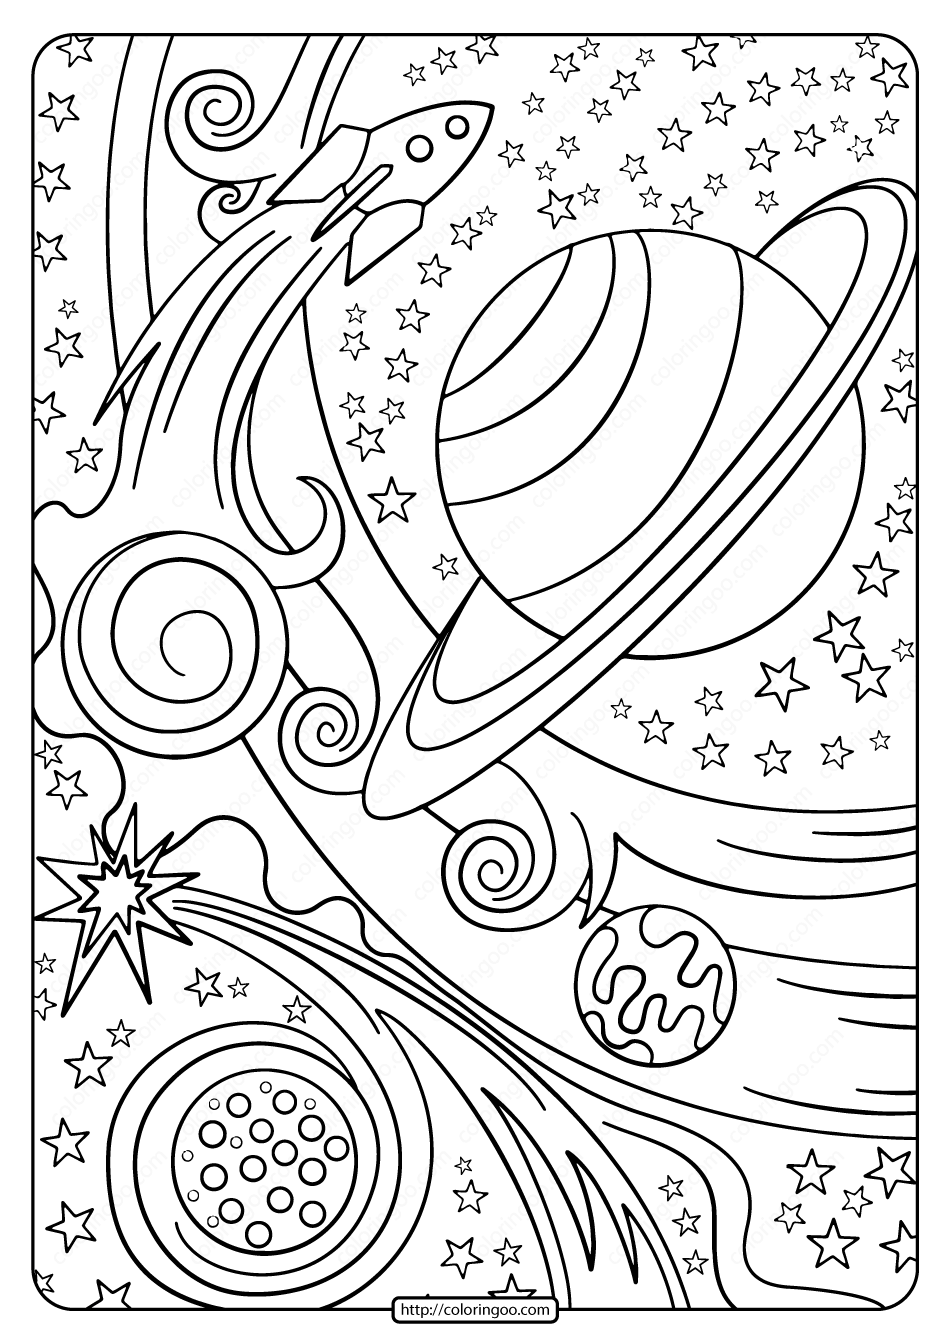 coloring prints free printable rocket and planets pdf coloring page coloring prints